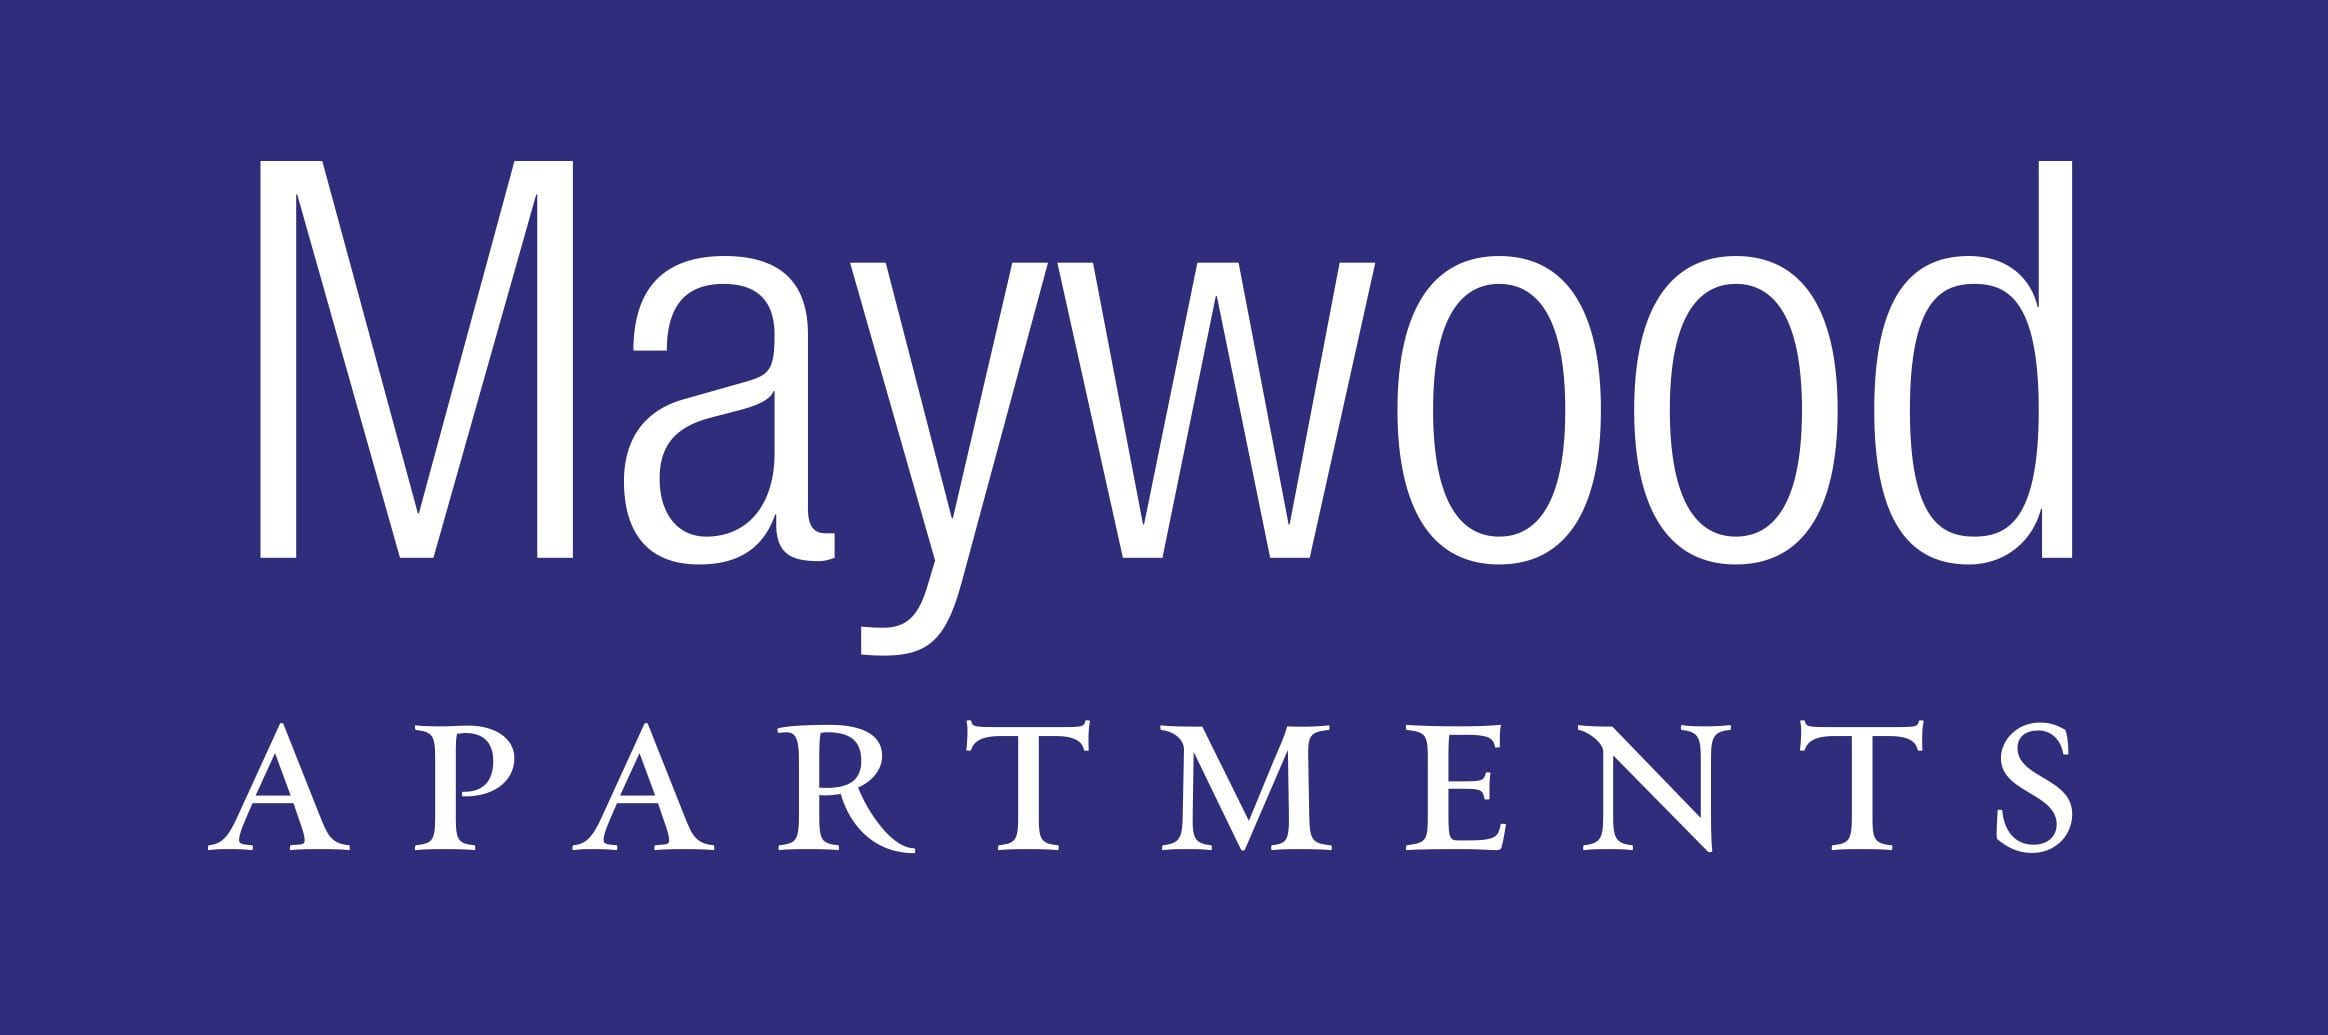 Maywood Apartments